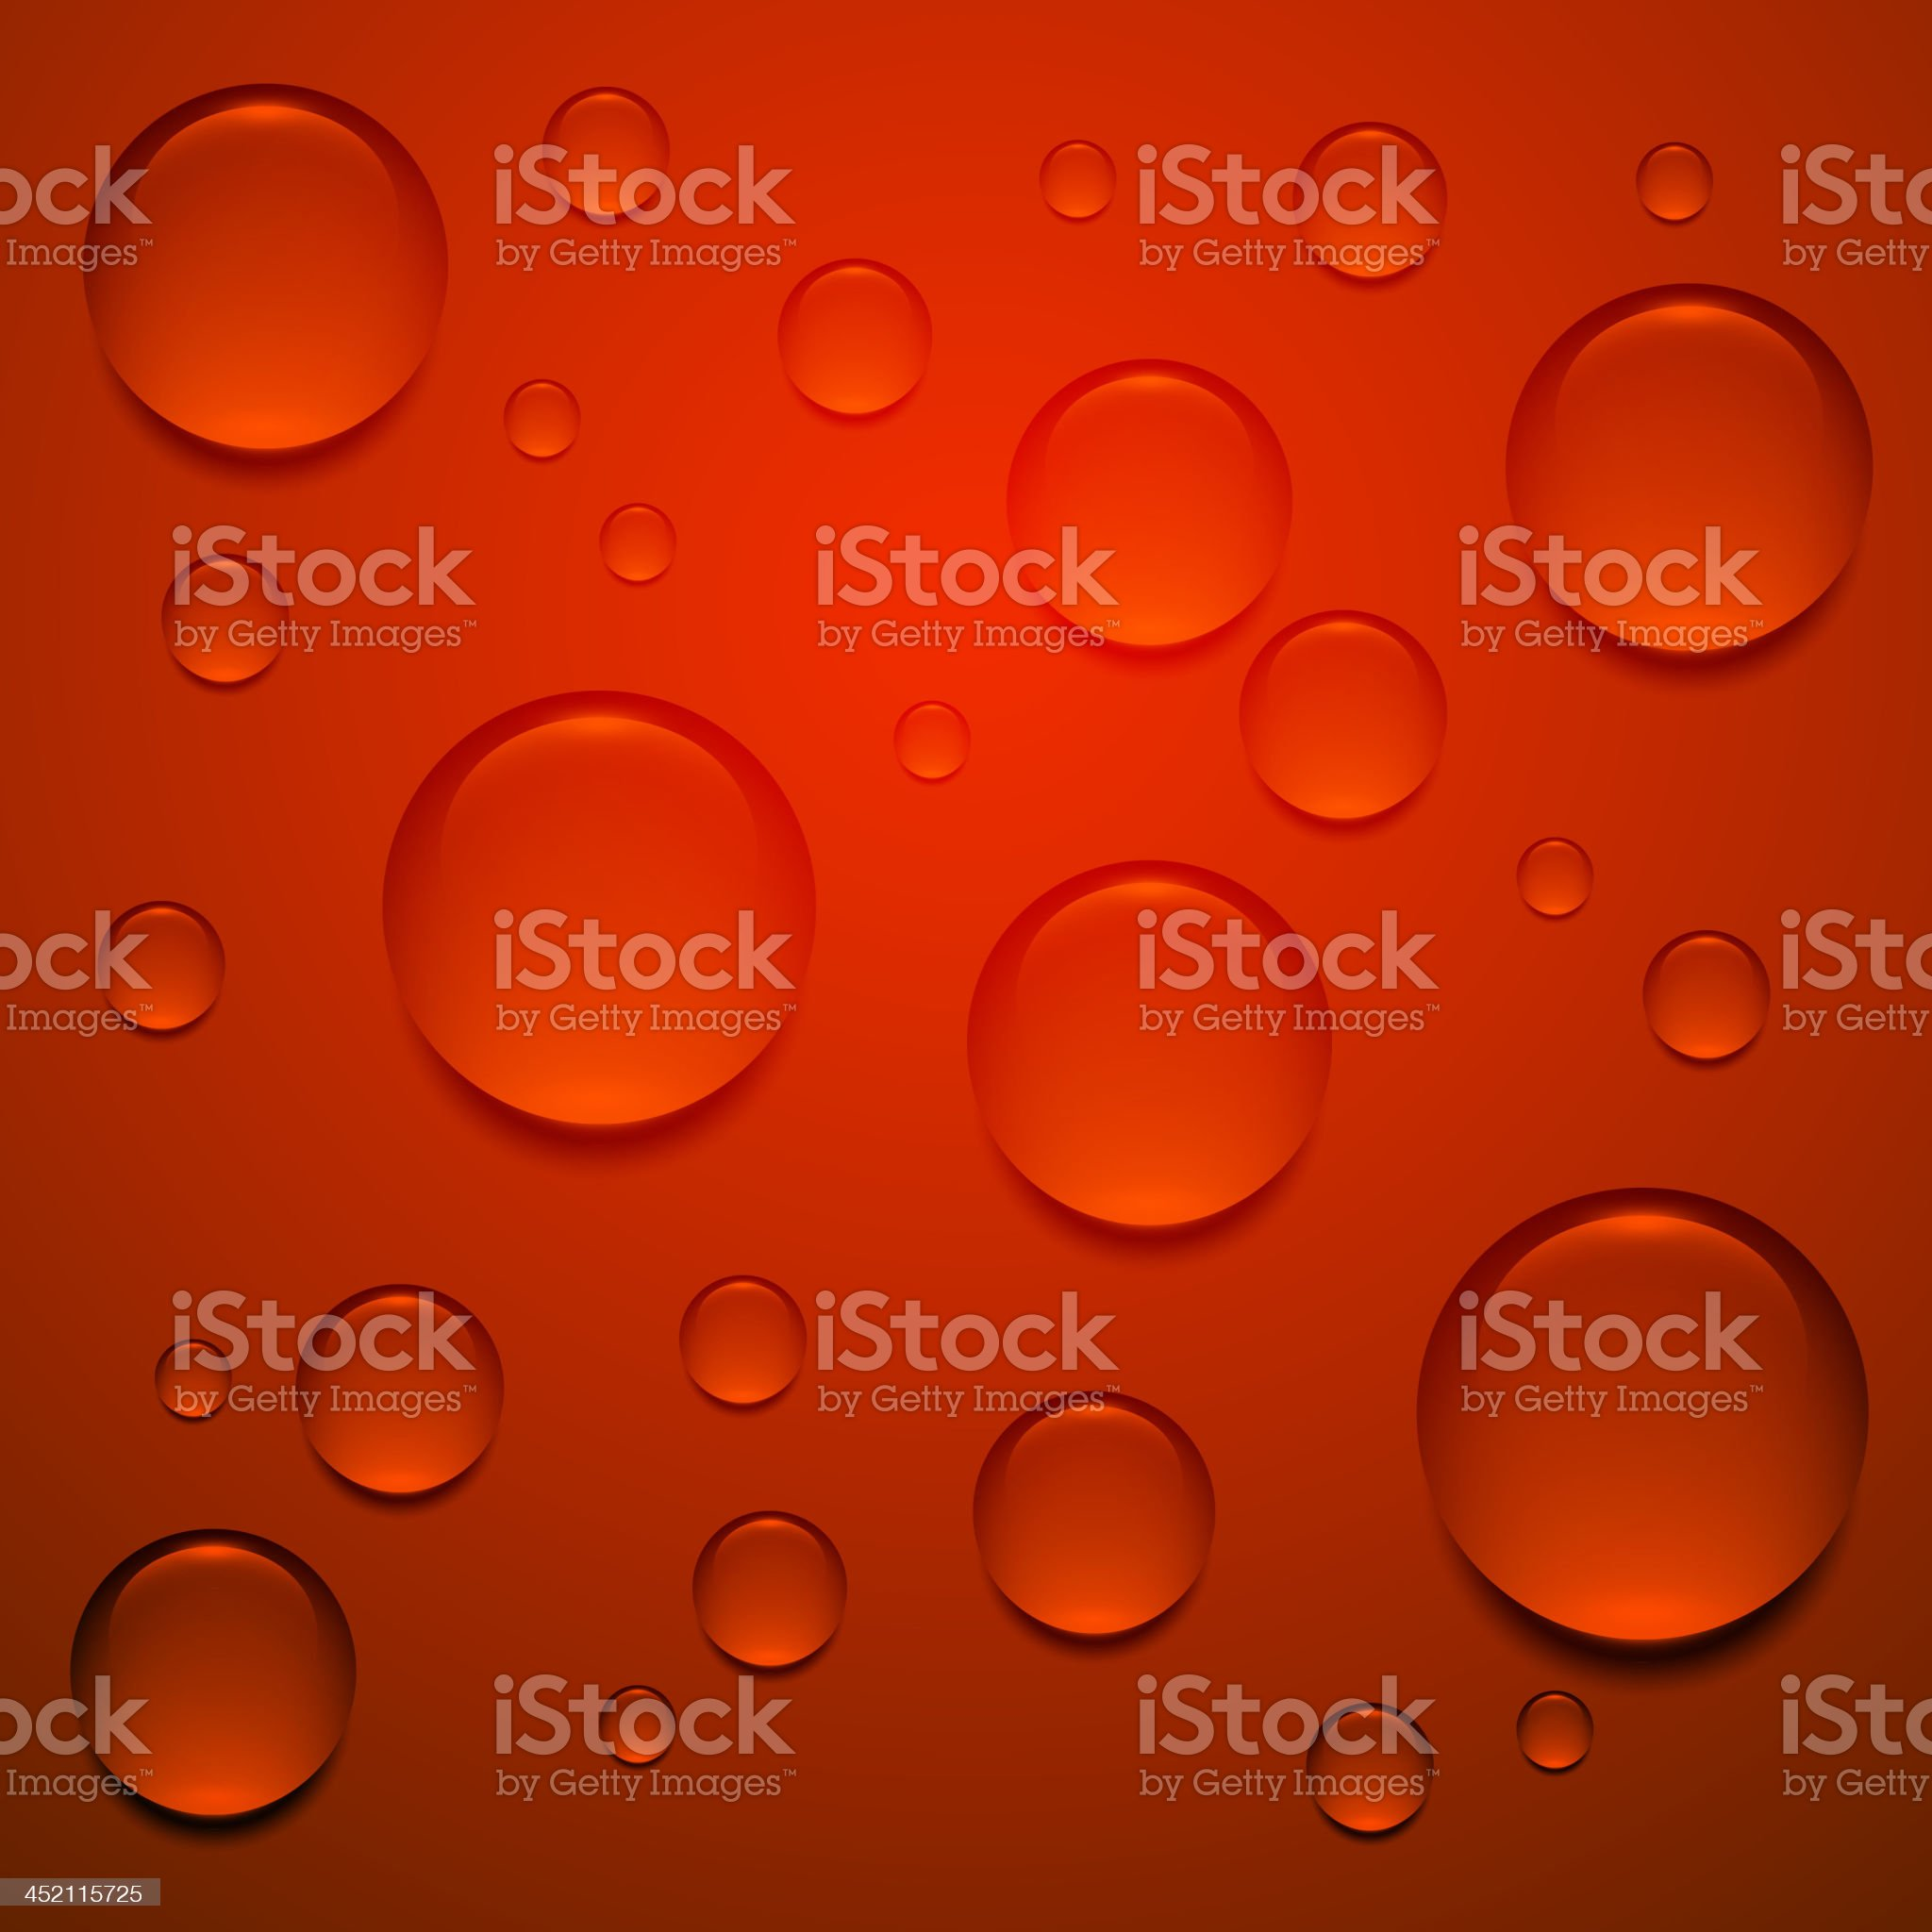 Transparent droplet on red surface royalty-free stock vector art